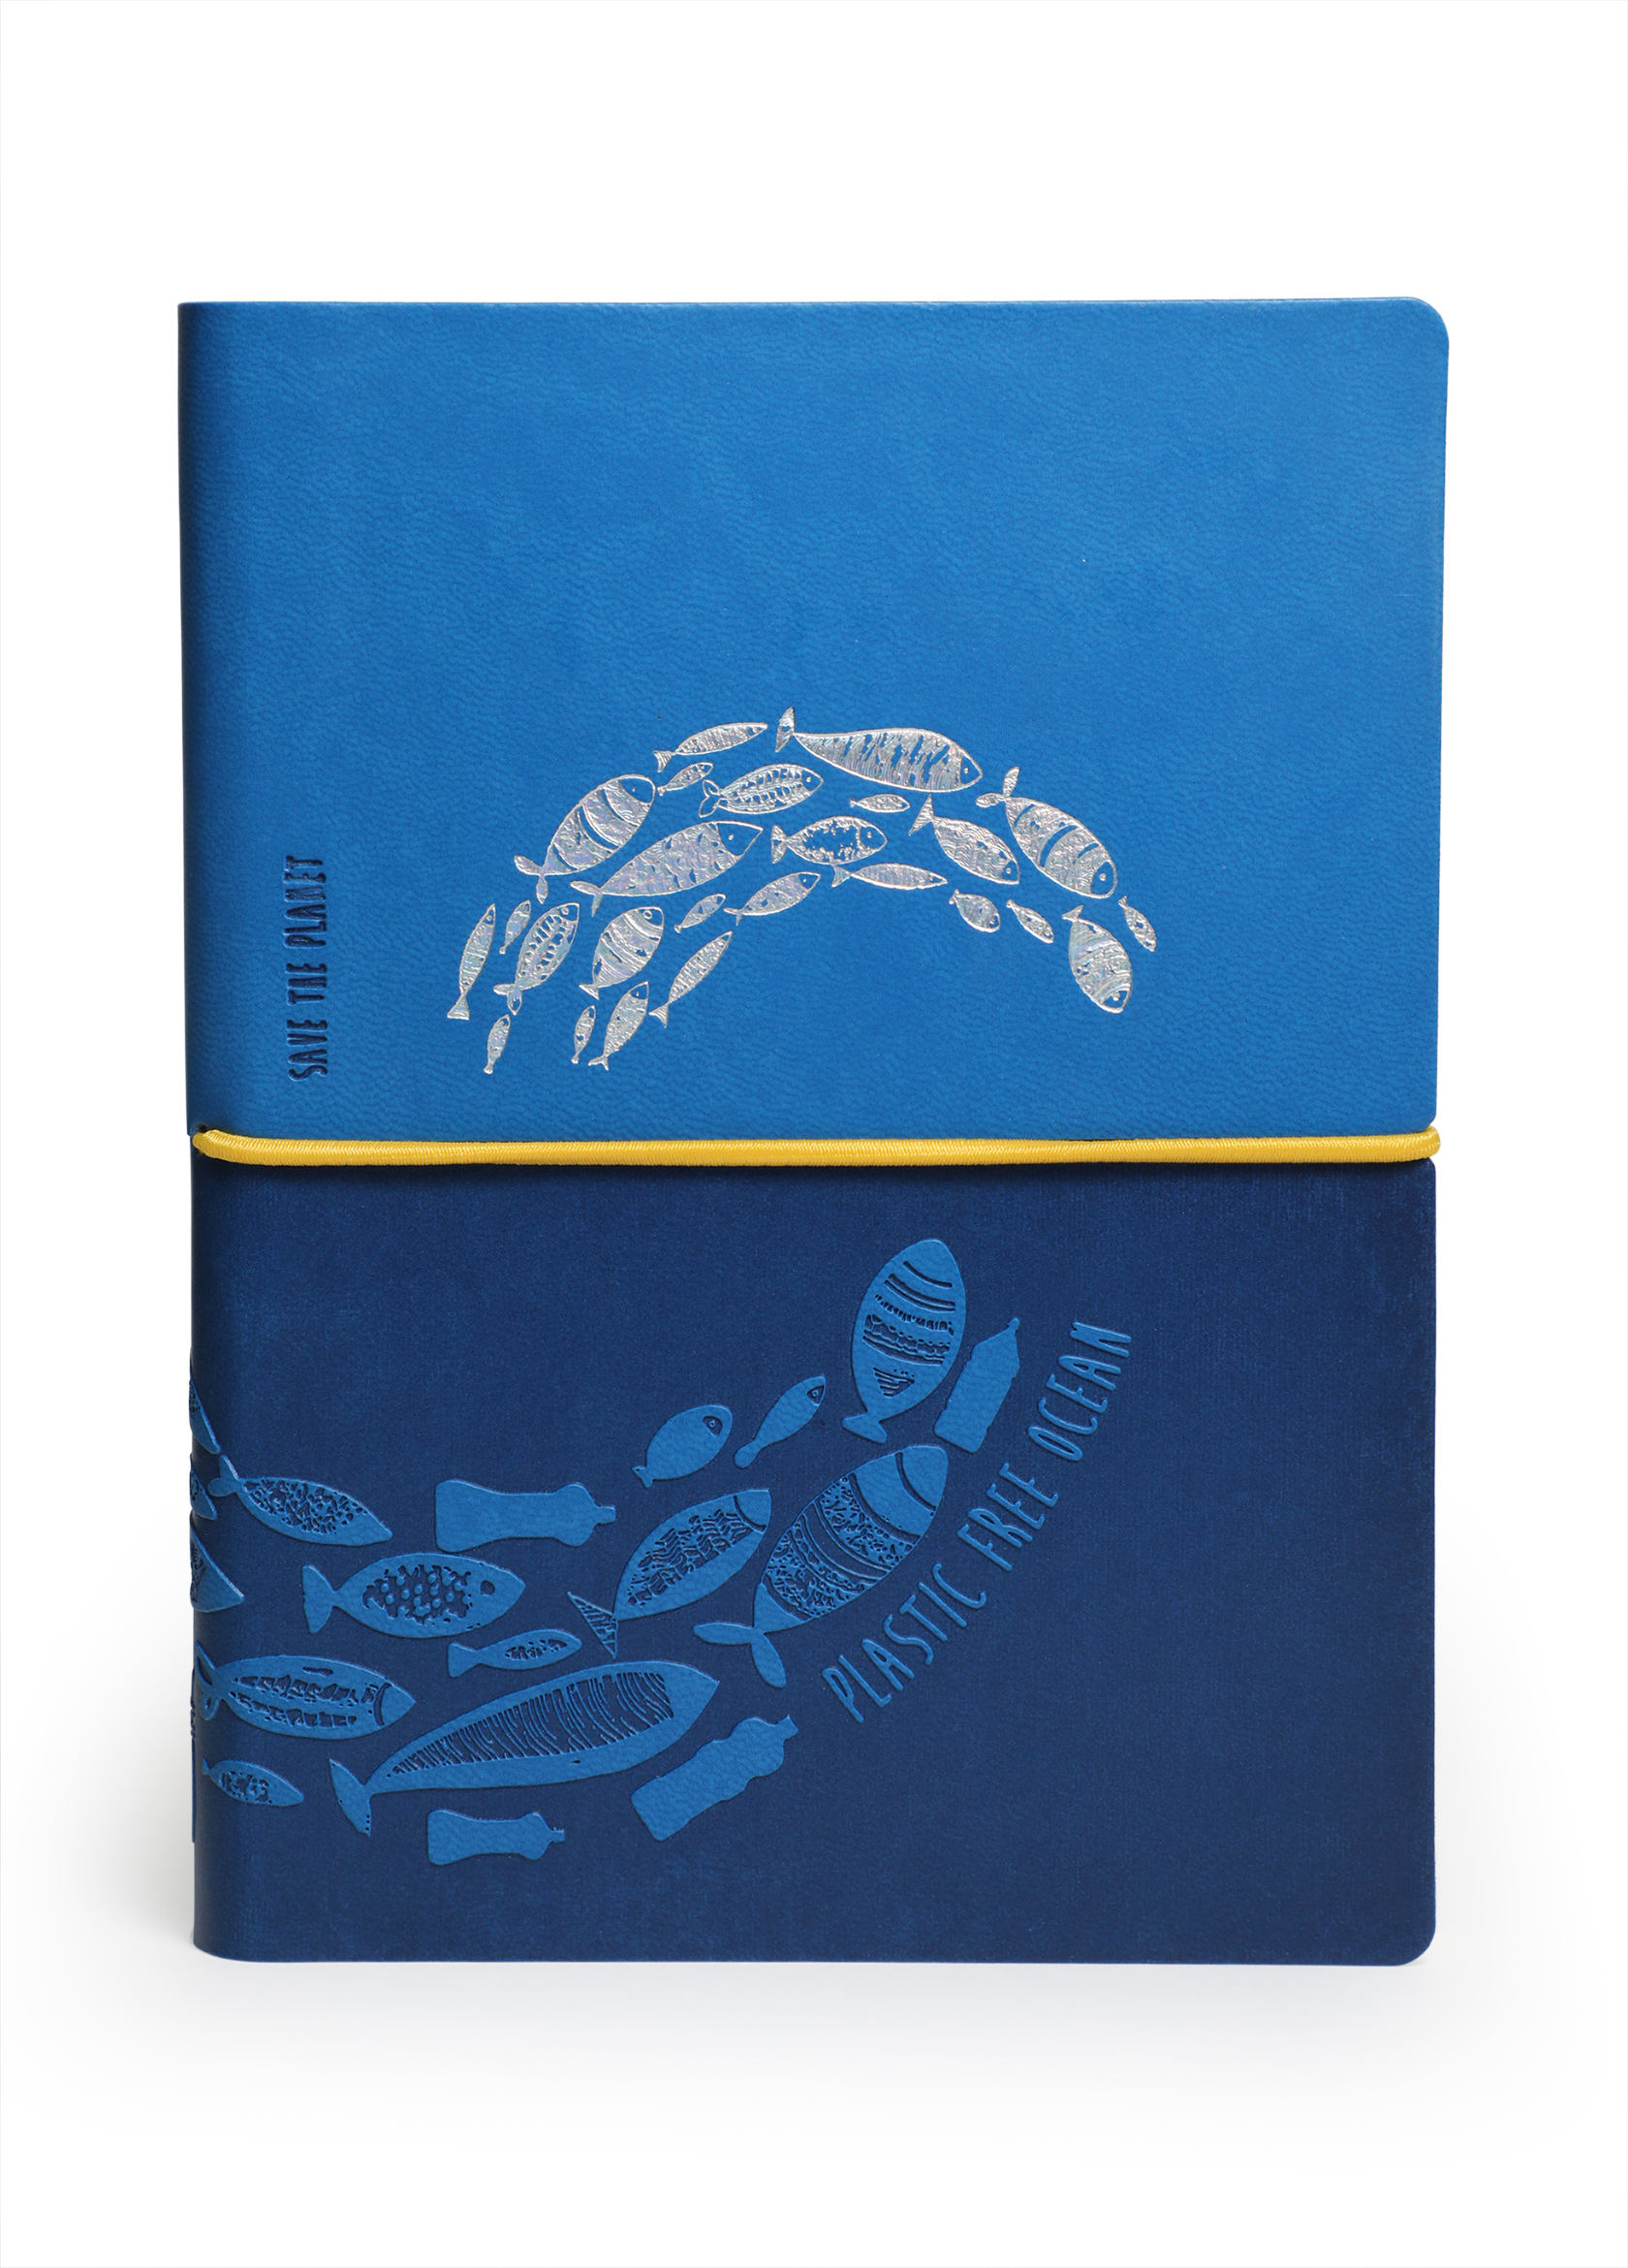 Ciak SAVE THE PLANET Notebook